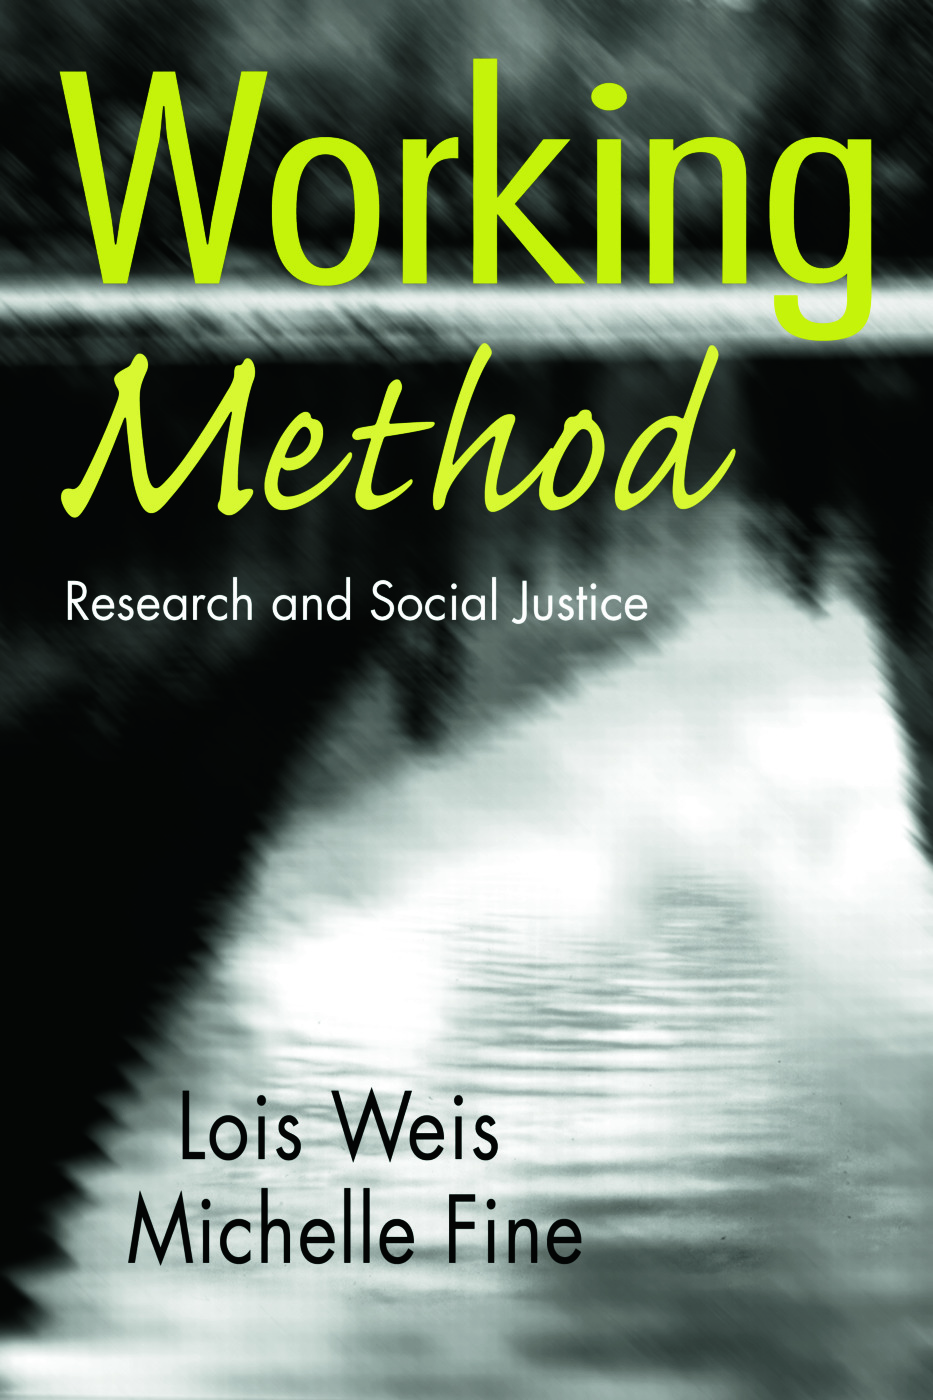 Working Method: Research and Social Justice book cover